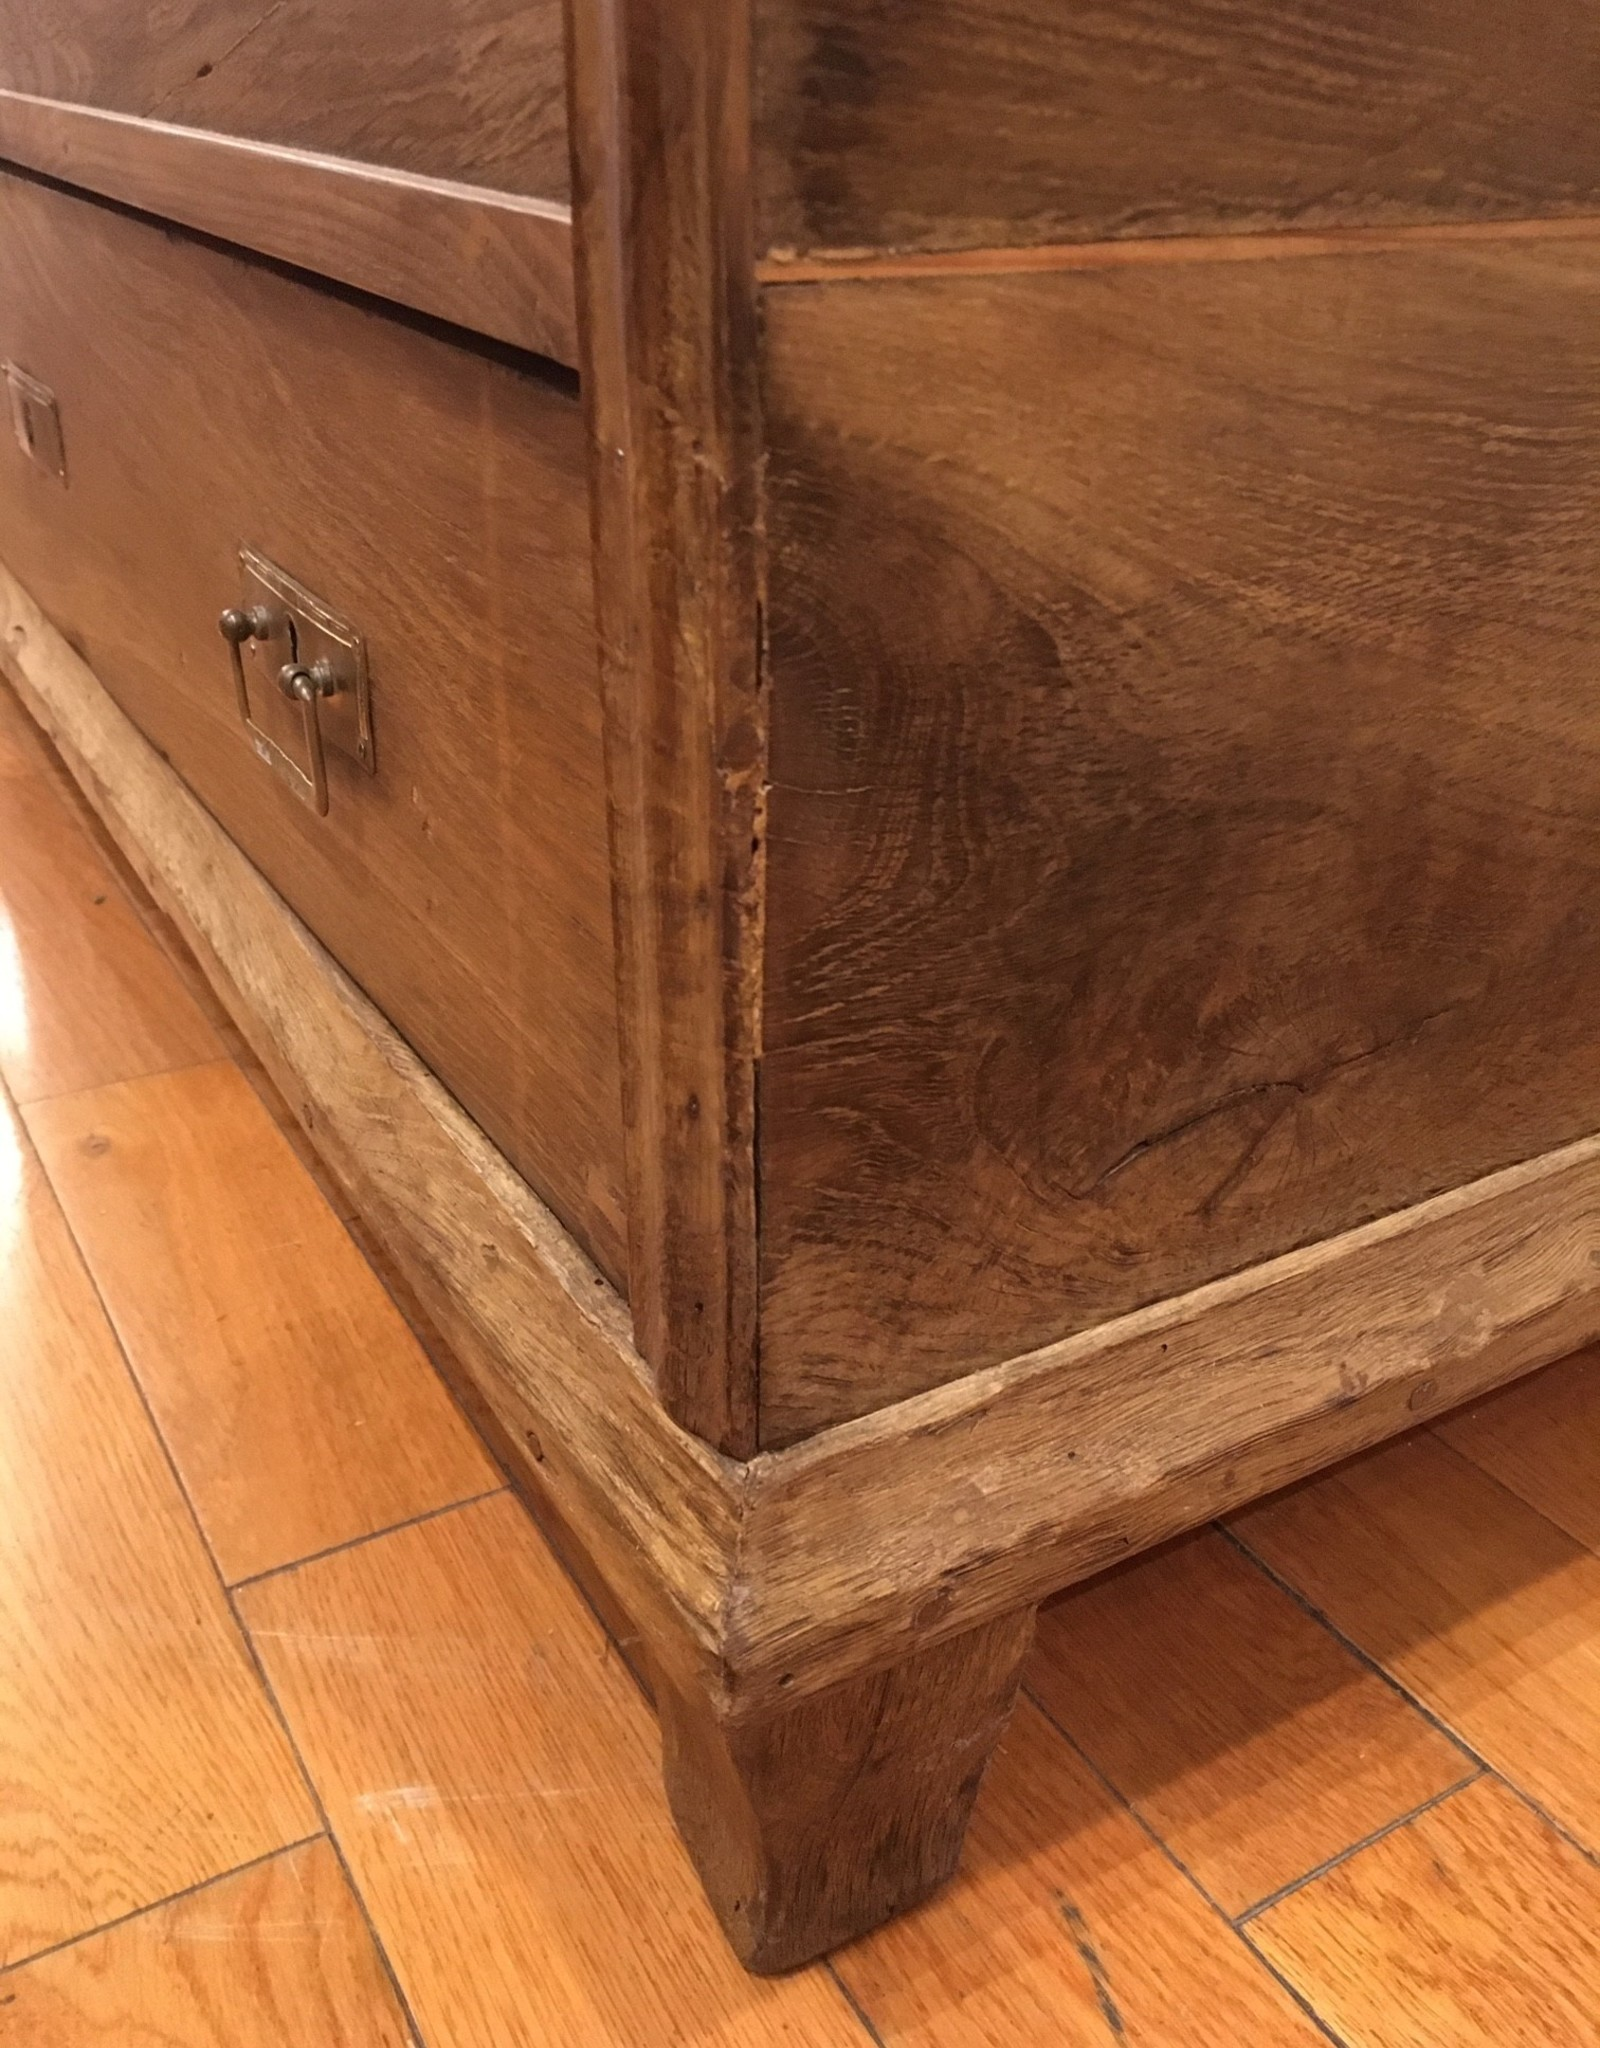 Trunk I - Original Oak - Circa 1880